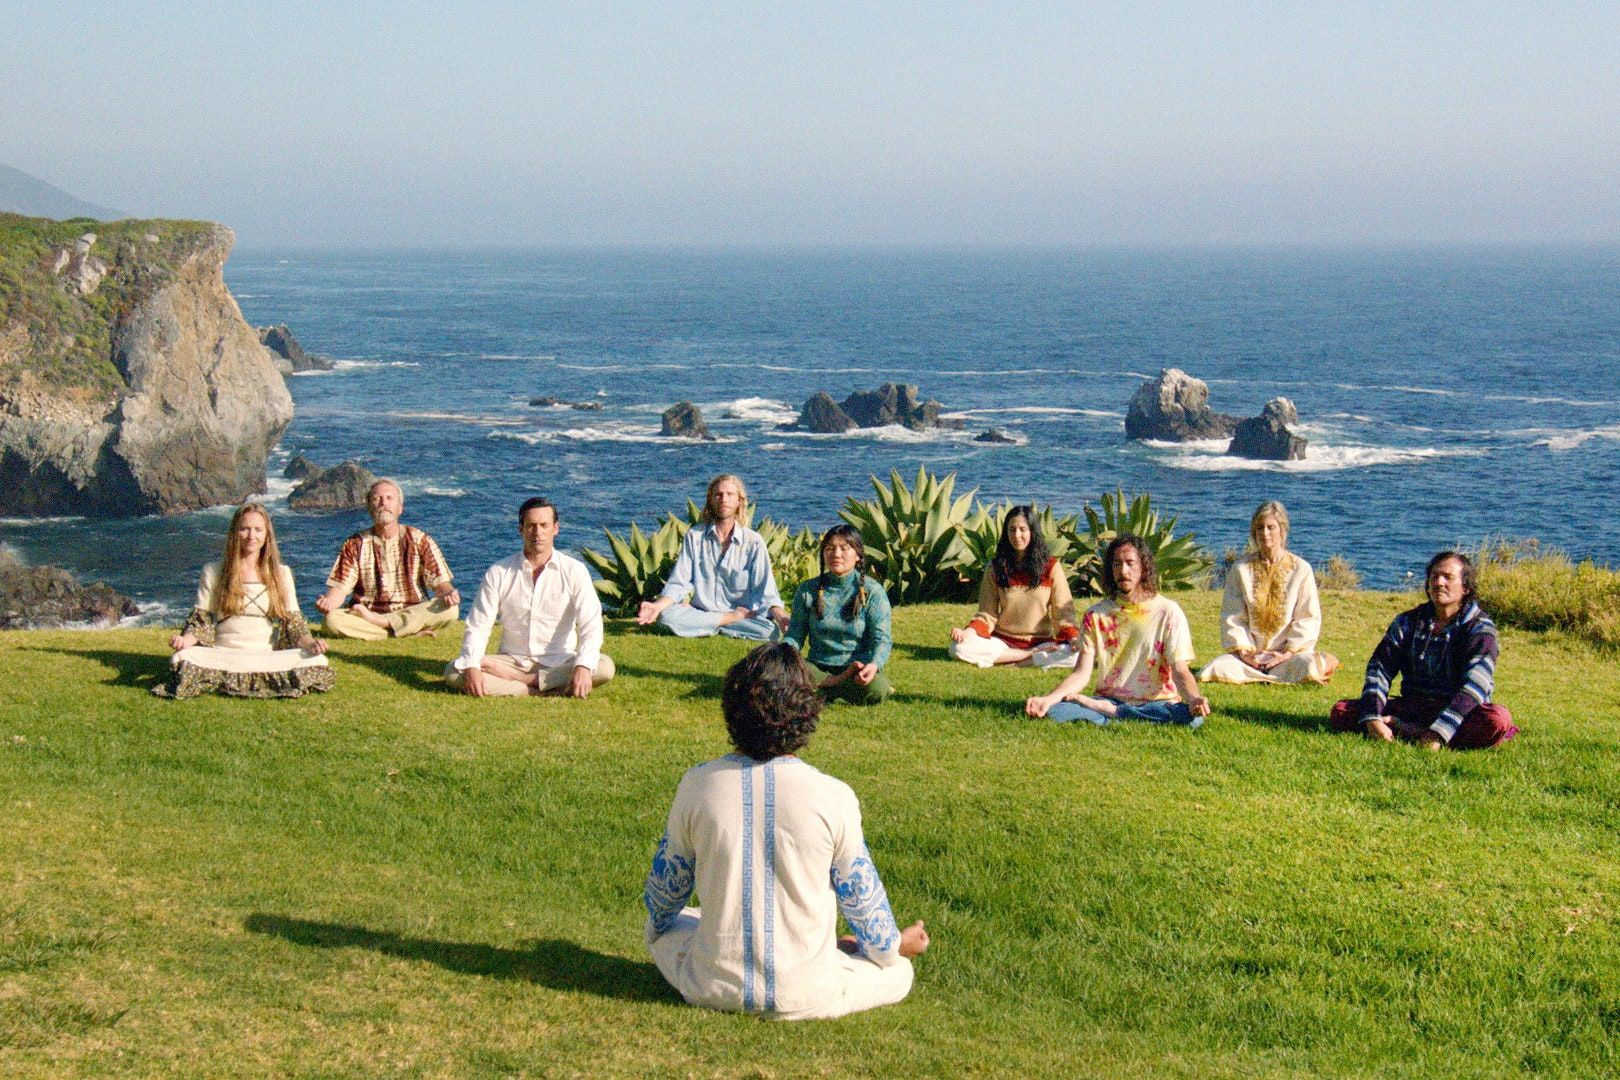 Still from the series finale of Madmen showing a group of people sitting in a circle meditating.